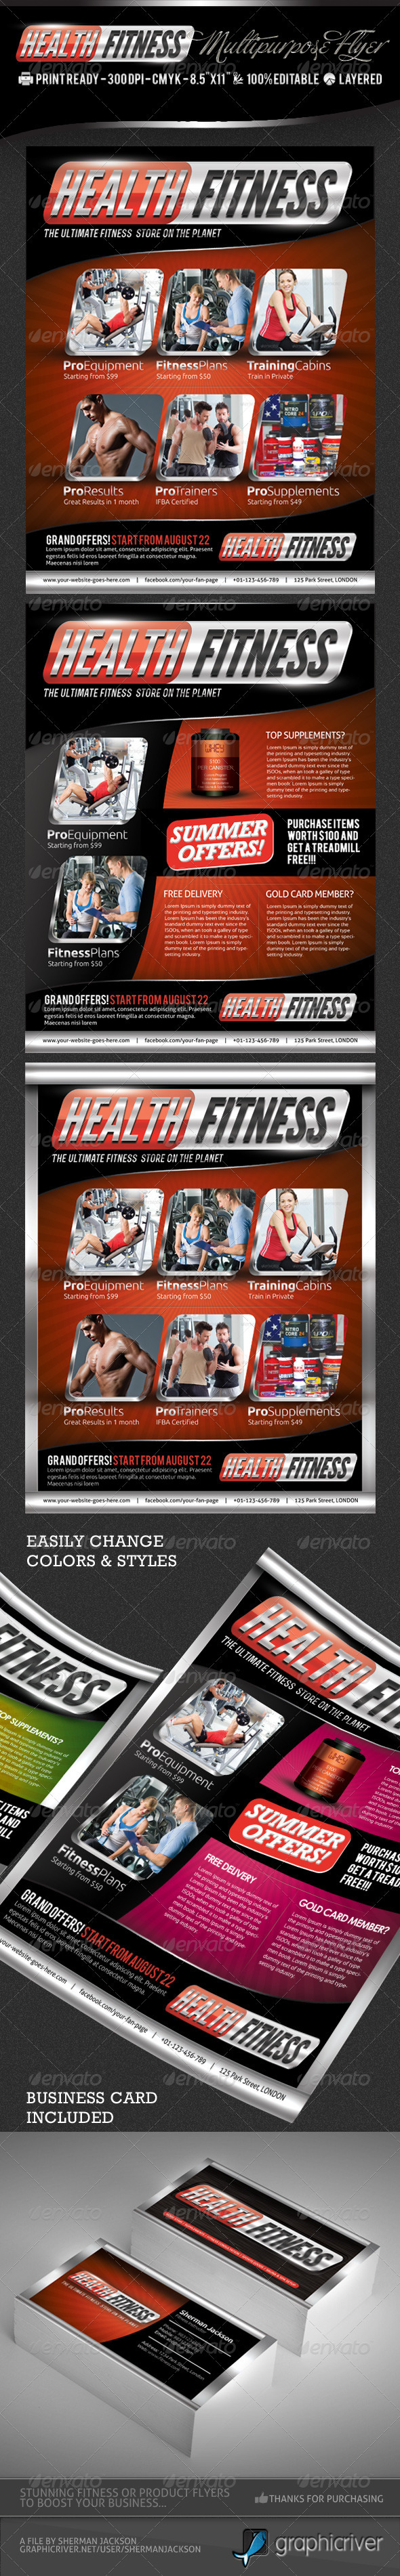 Health fitness pro flyer business card psd by shermanjackson health fitness pro flyer business card psd commerce flyers colourmoves